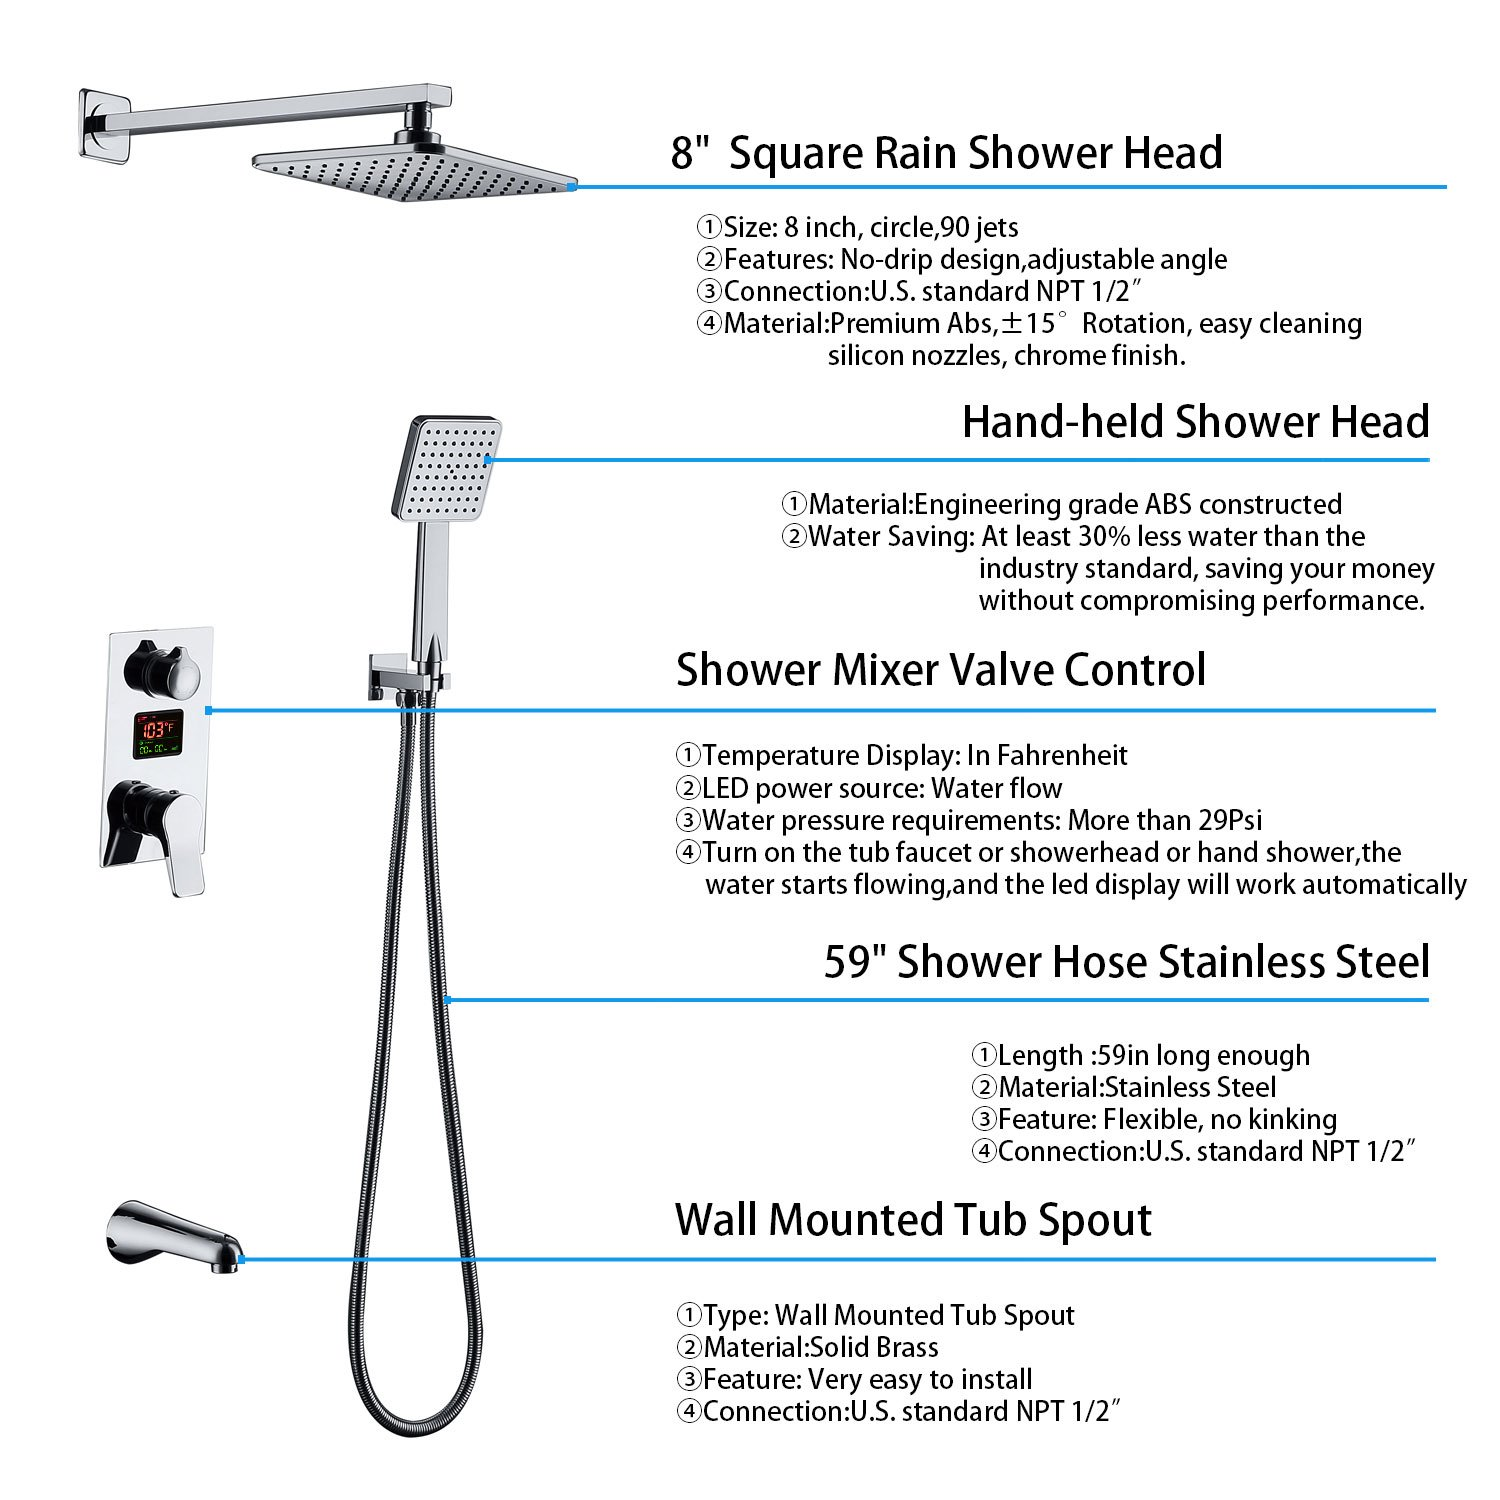 Derpras DPS003 LED Digital Display Wall Mount Bathroom Rain Mixer Shower Set, 3 Way Shower System with Luxury Rainfall Shower Head, Handheld Shower and Tub Spout Faucet, Fahrenheit Display by Derpras (Image #3)